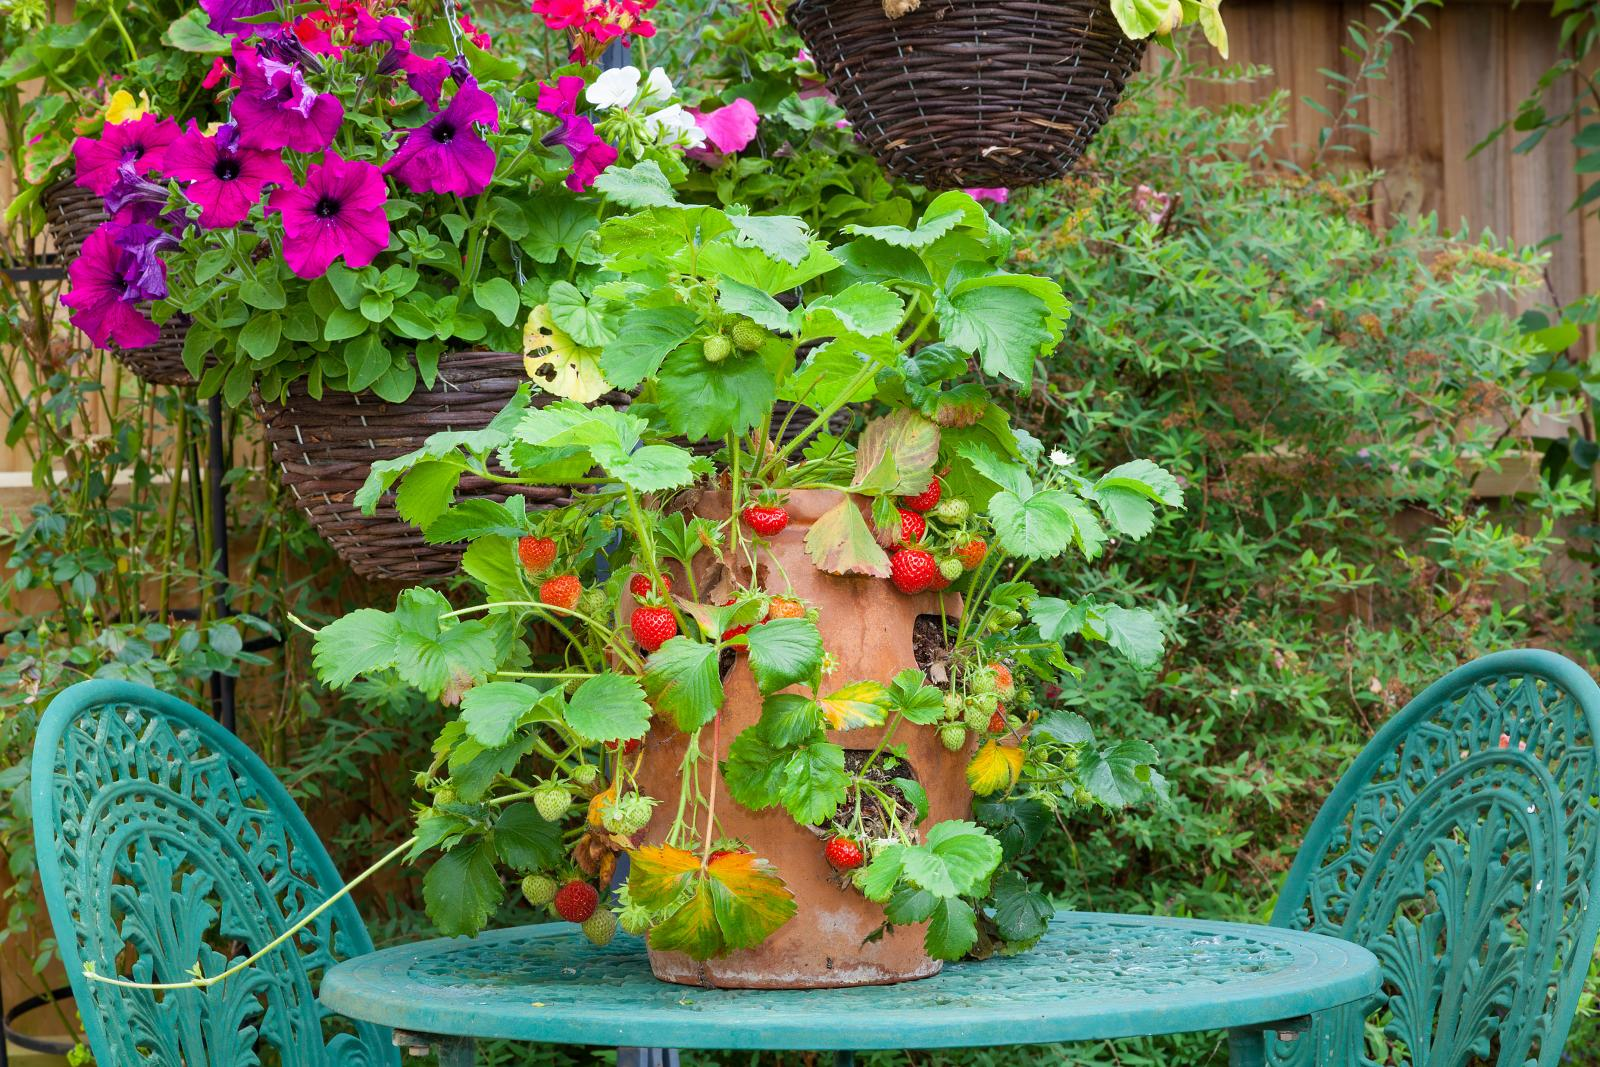 Strawberries in a terracotta planter